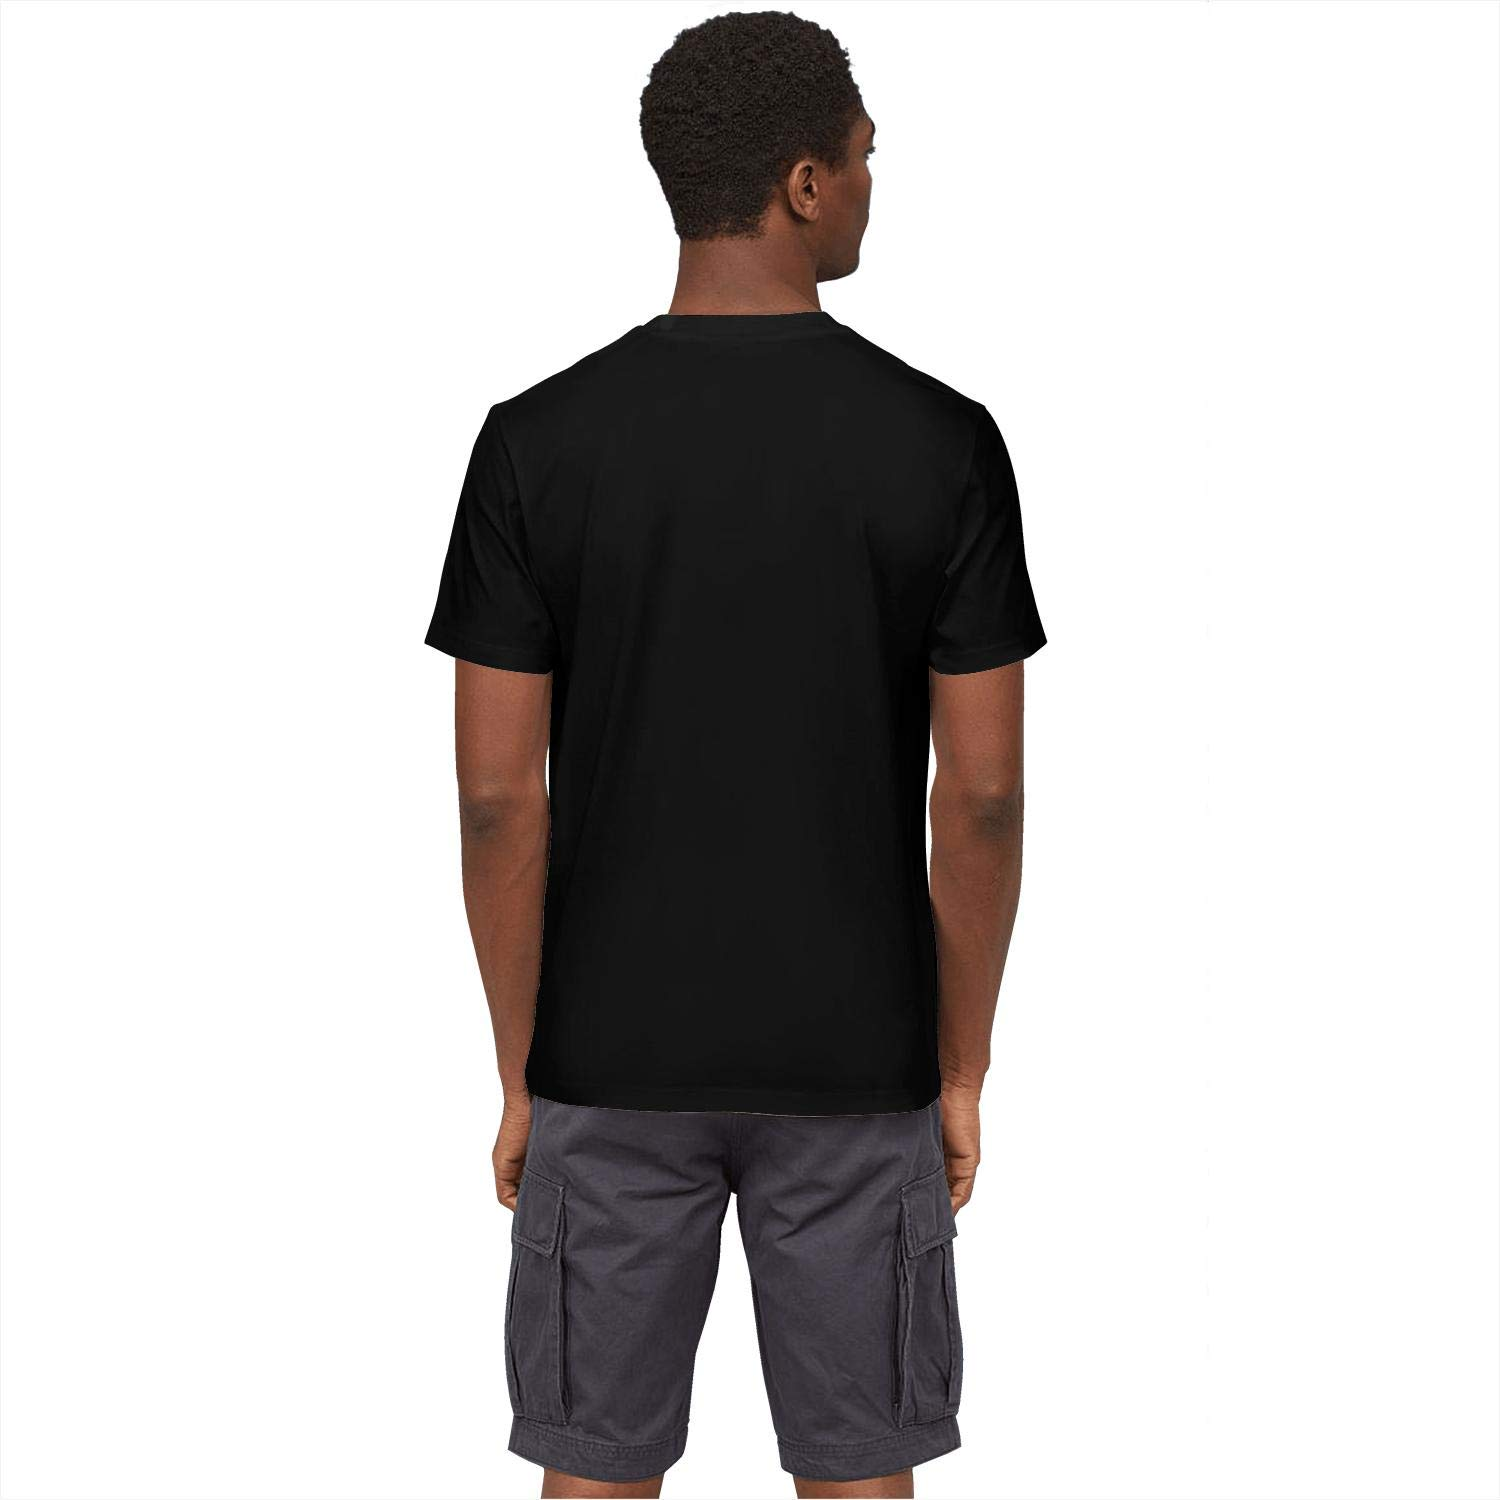 Just Hiker Mens Cool Basketball Players Design Fans Short T-Shirts Gym Clothes Office